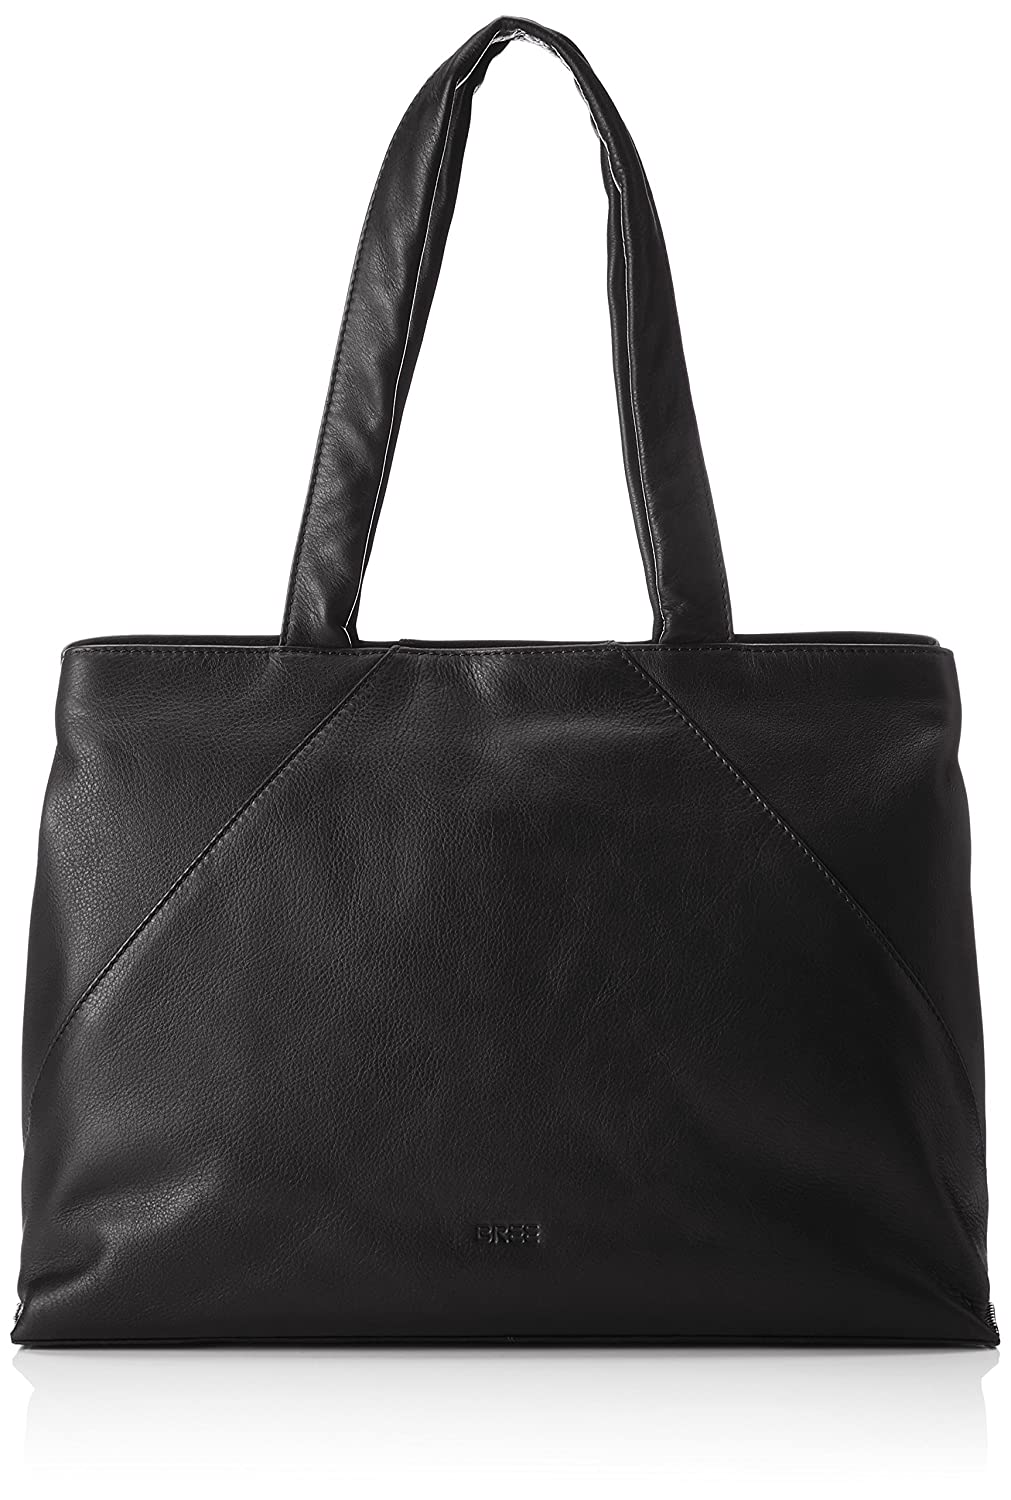 BREE Lusaka 4, Women's Shoulder Bag, Black, 14x30x38 cm (B x H T)